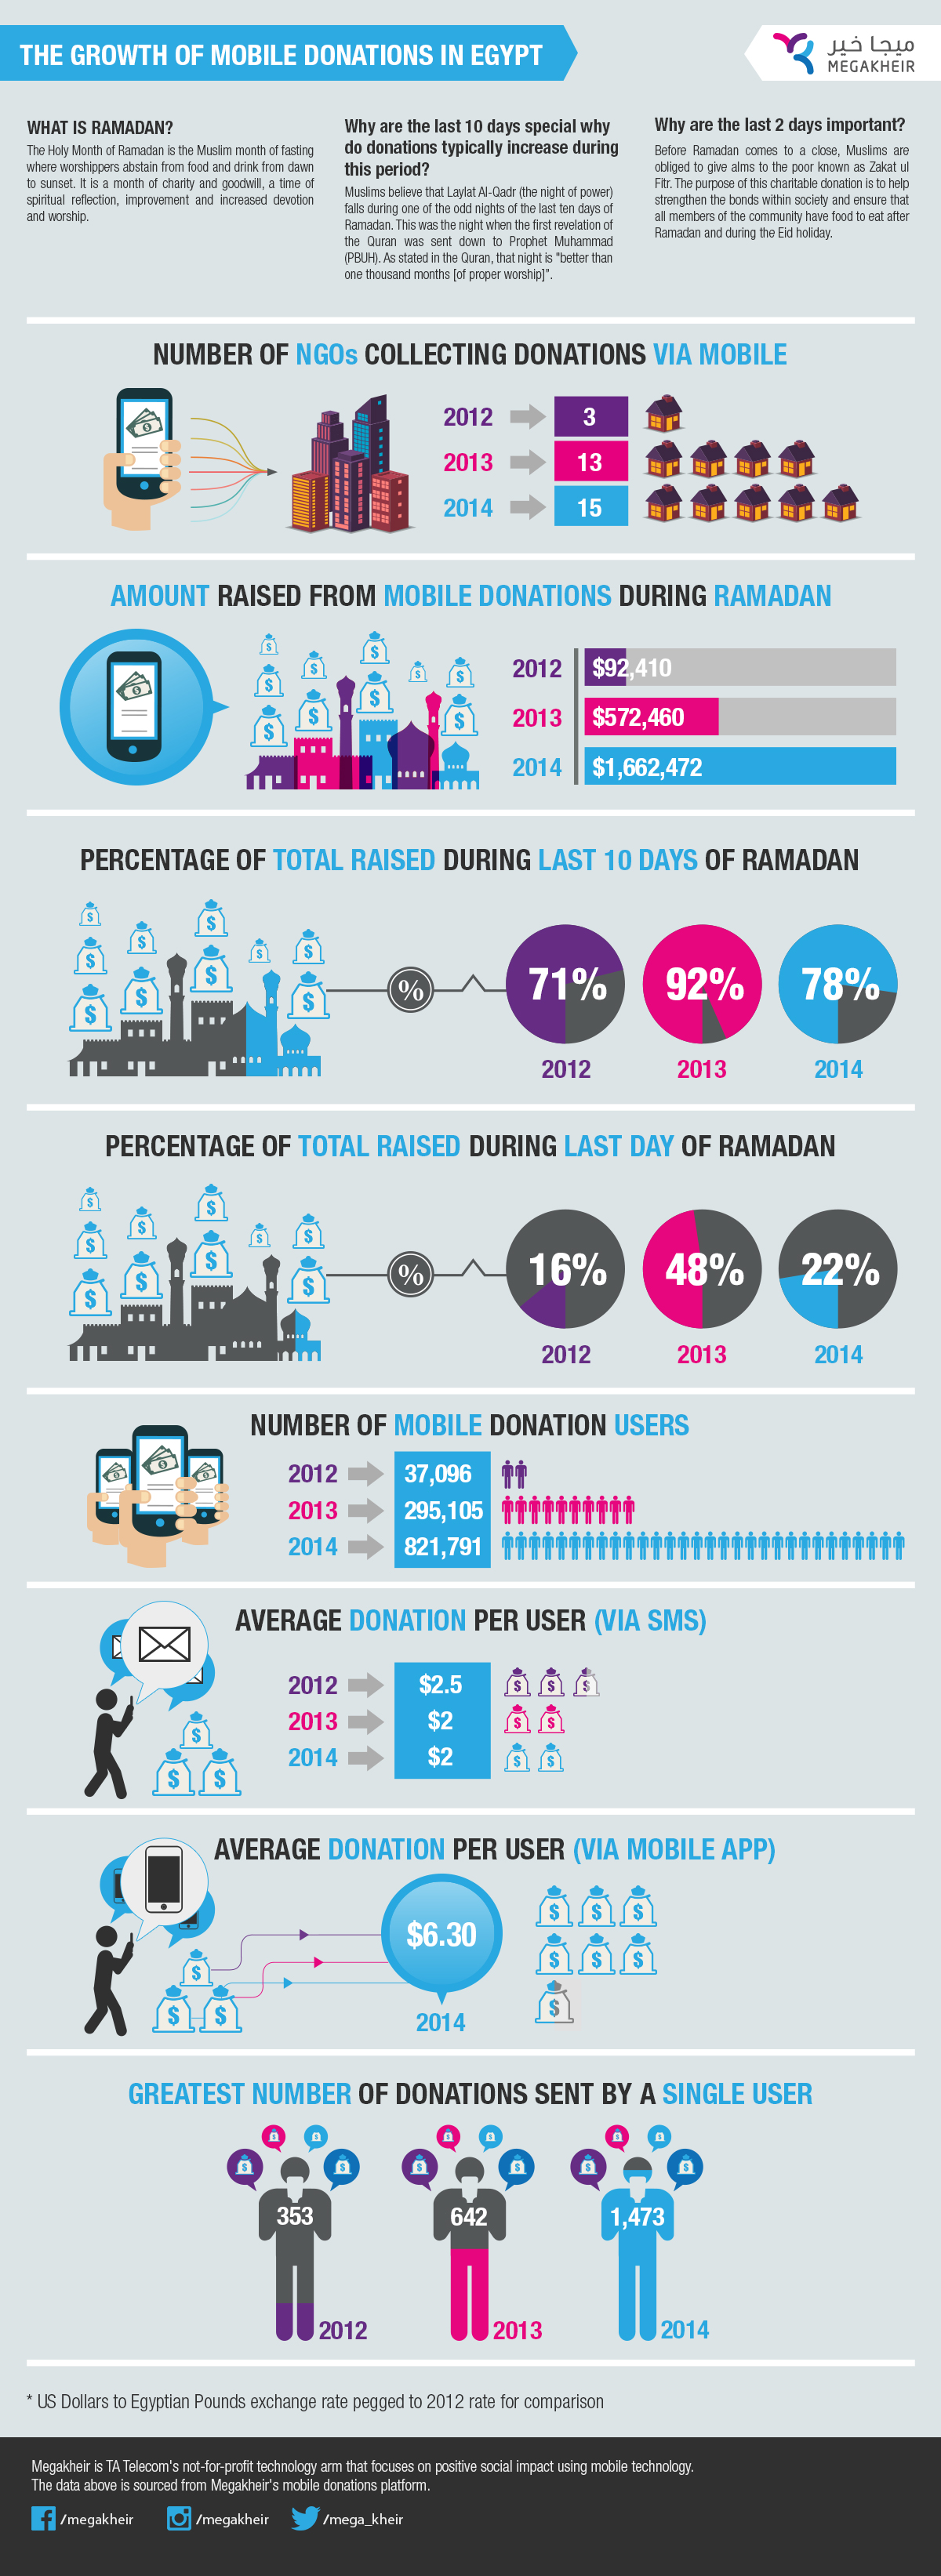 Megakheir Infographic: The Growth of Mobile Donations in Egypt